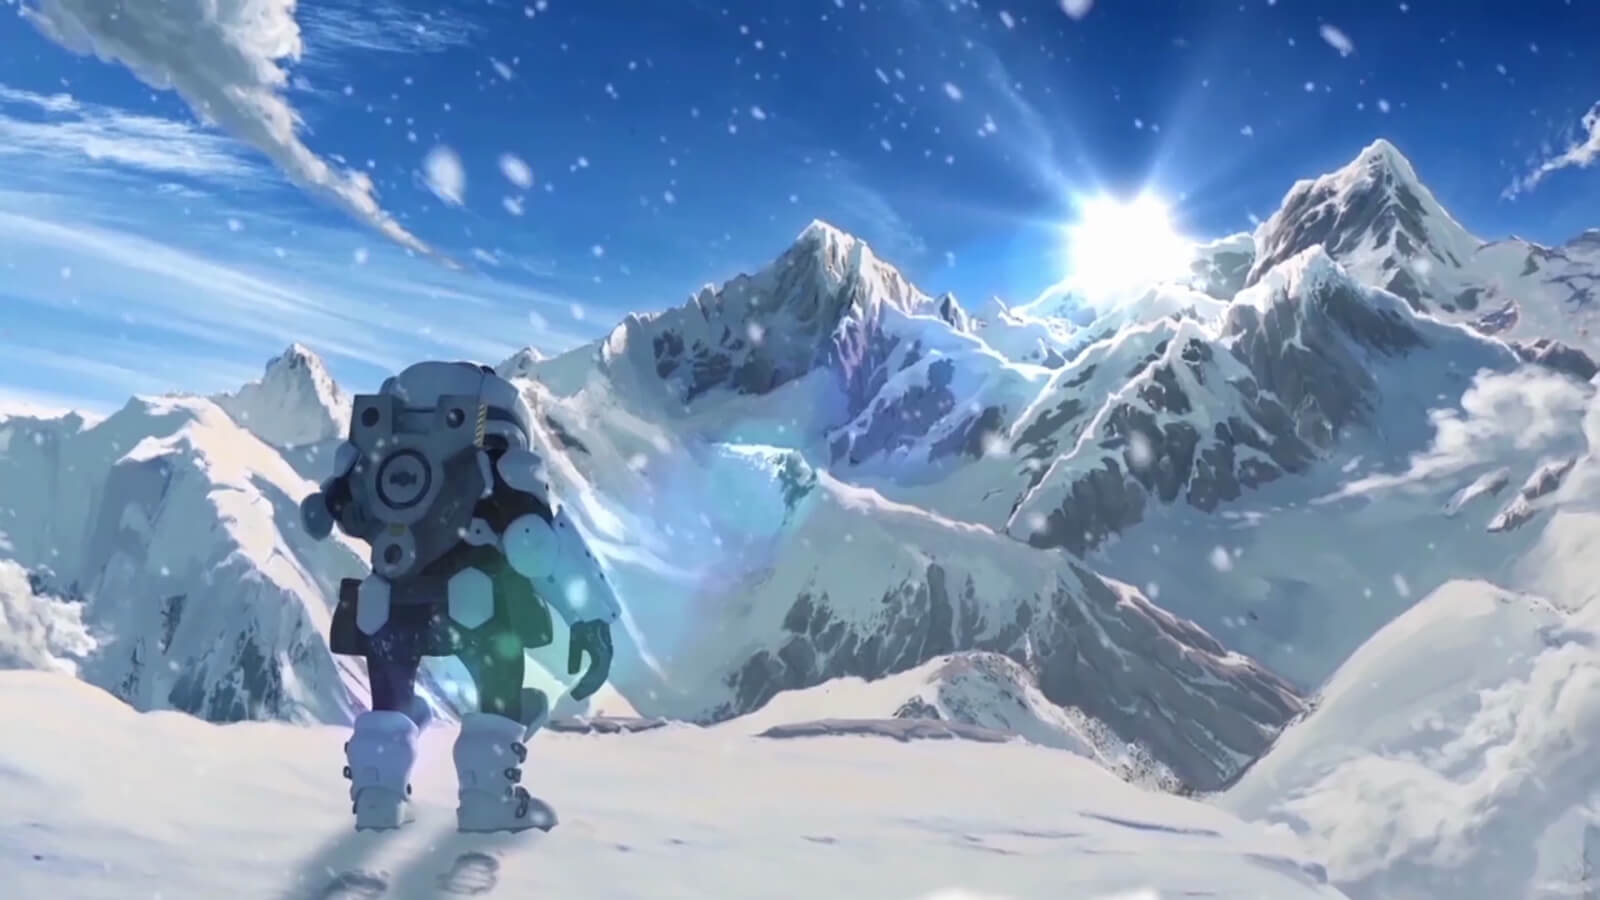 A man wearing futuristic armor stands on a snowy mountain top, looking at the sun rising over even higher peaks